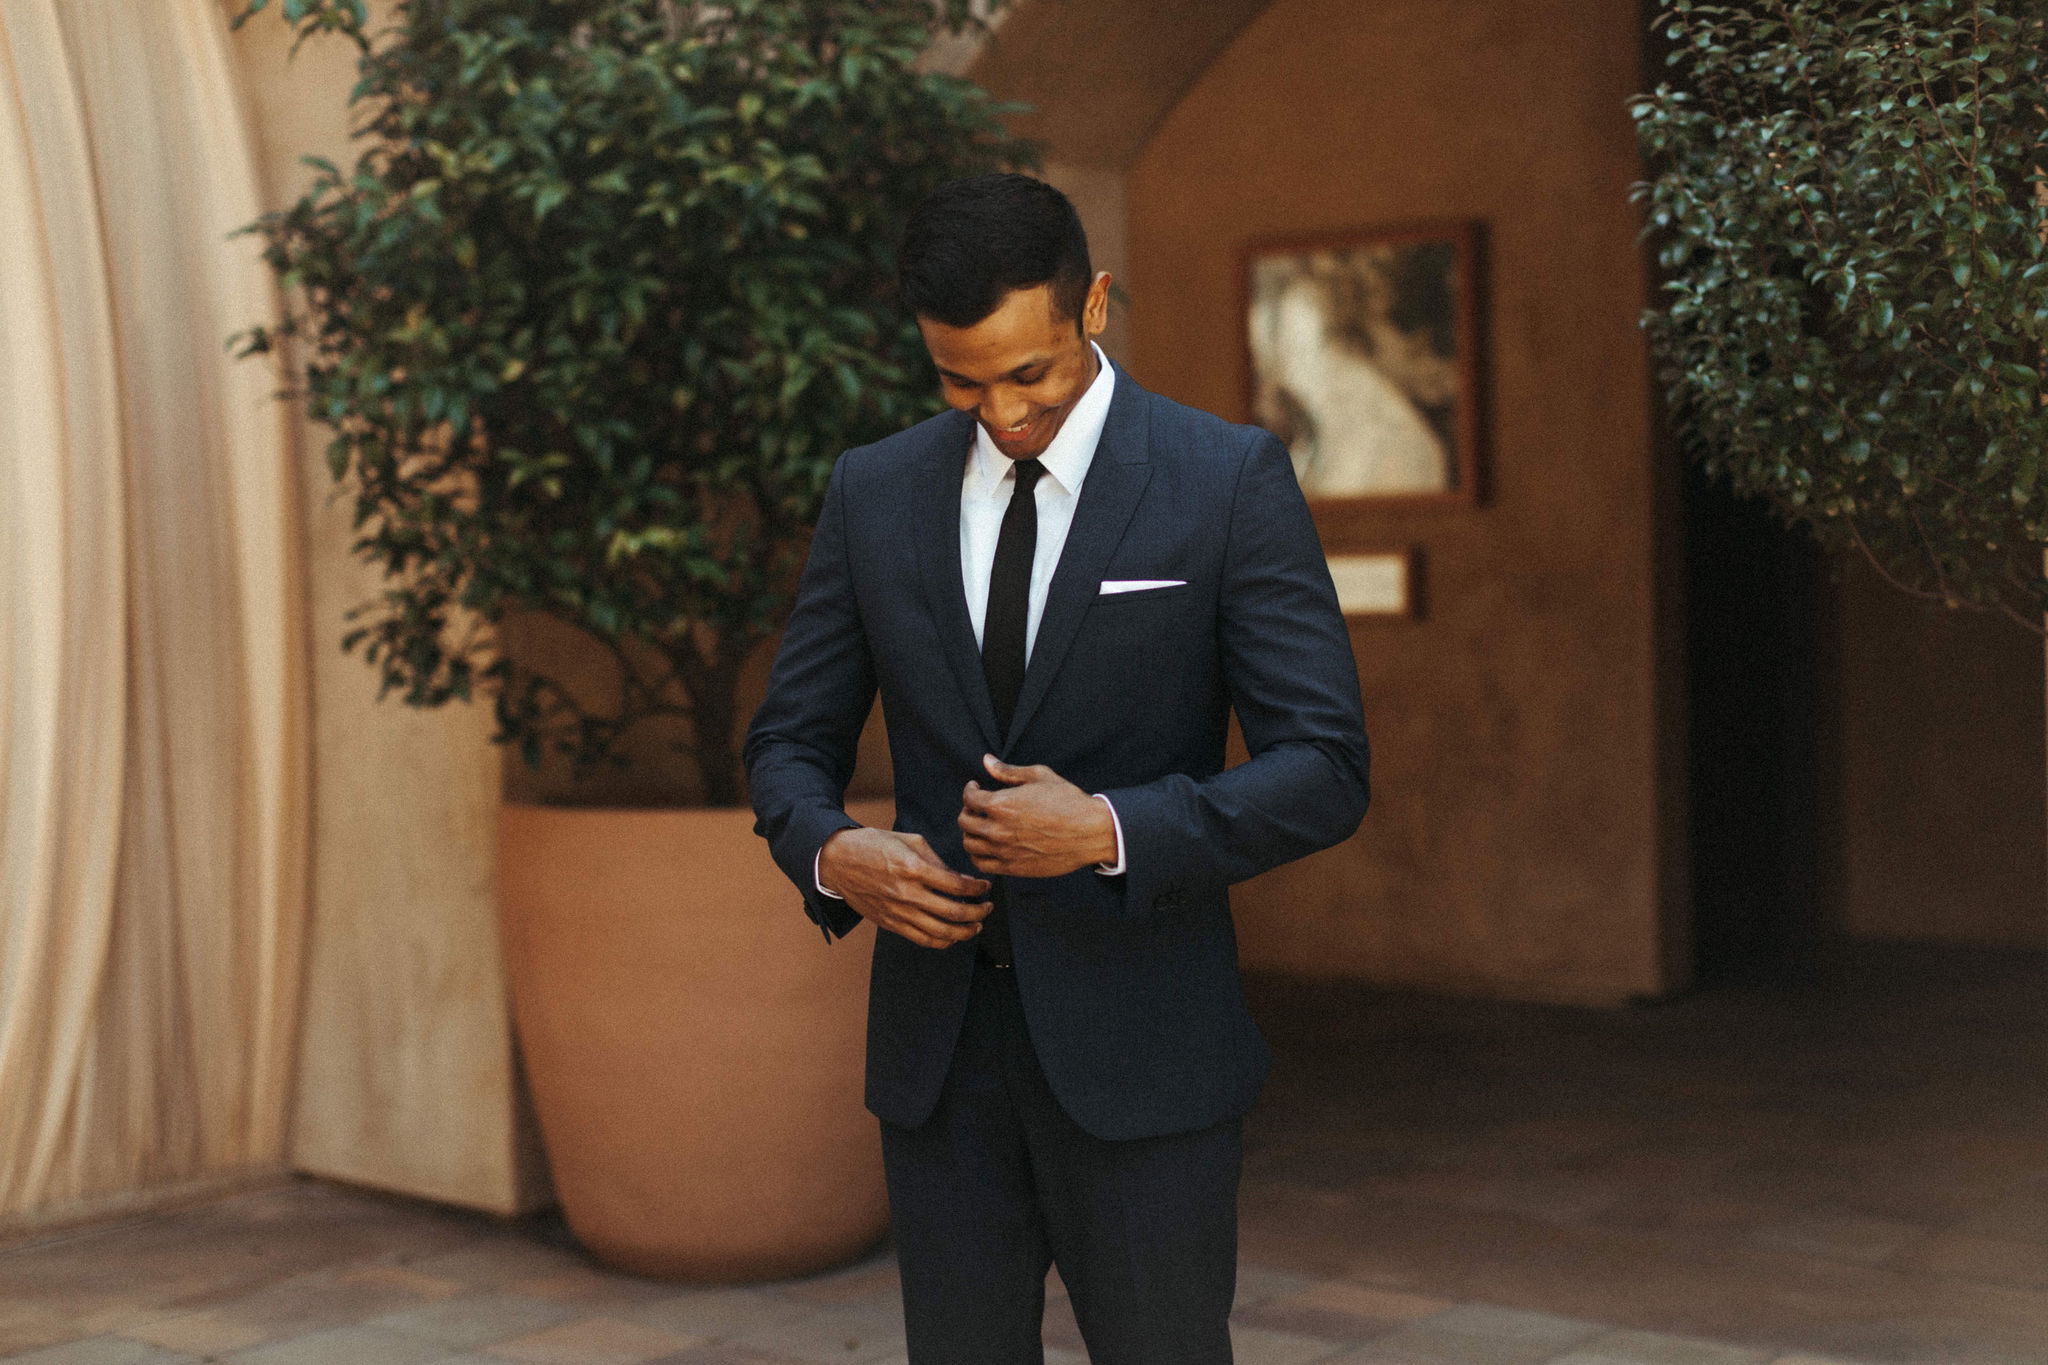 groom in navy suit and skinny black tie